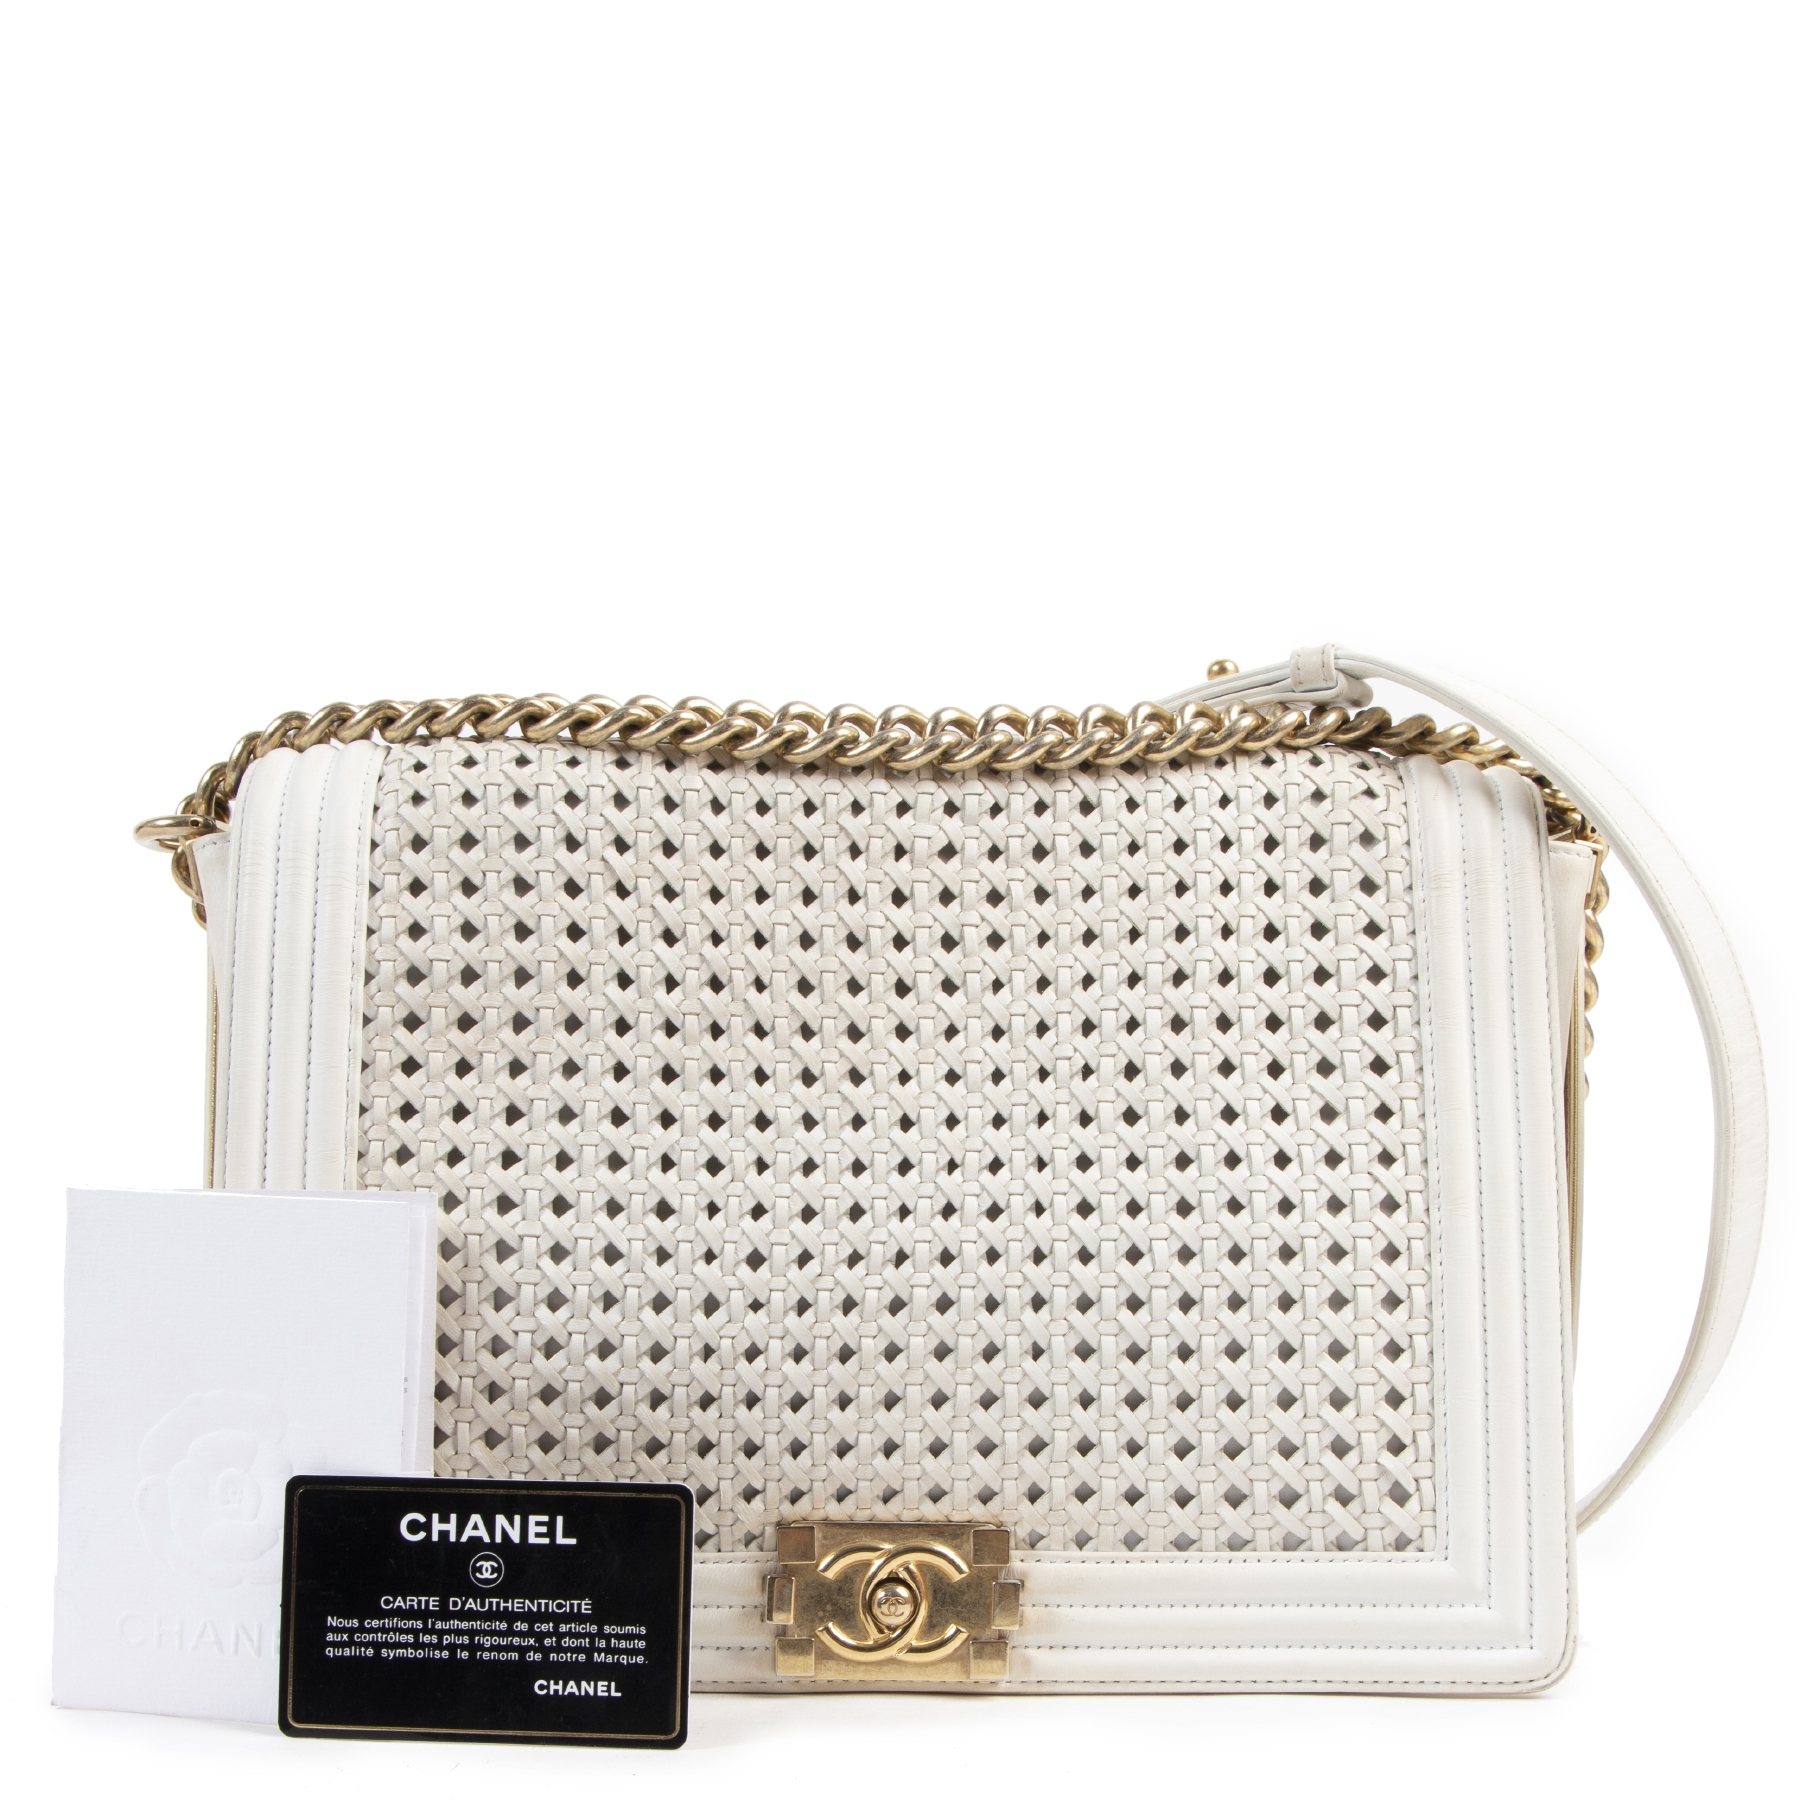 Chanel Large White Braided Boy Flap Bag